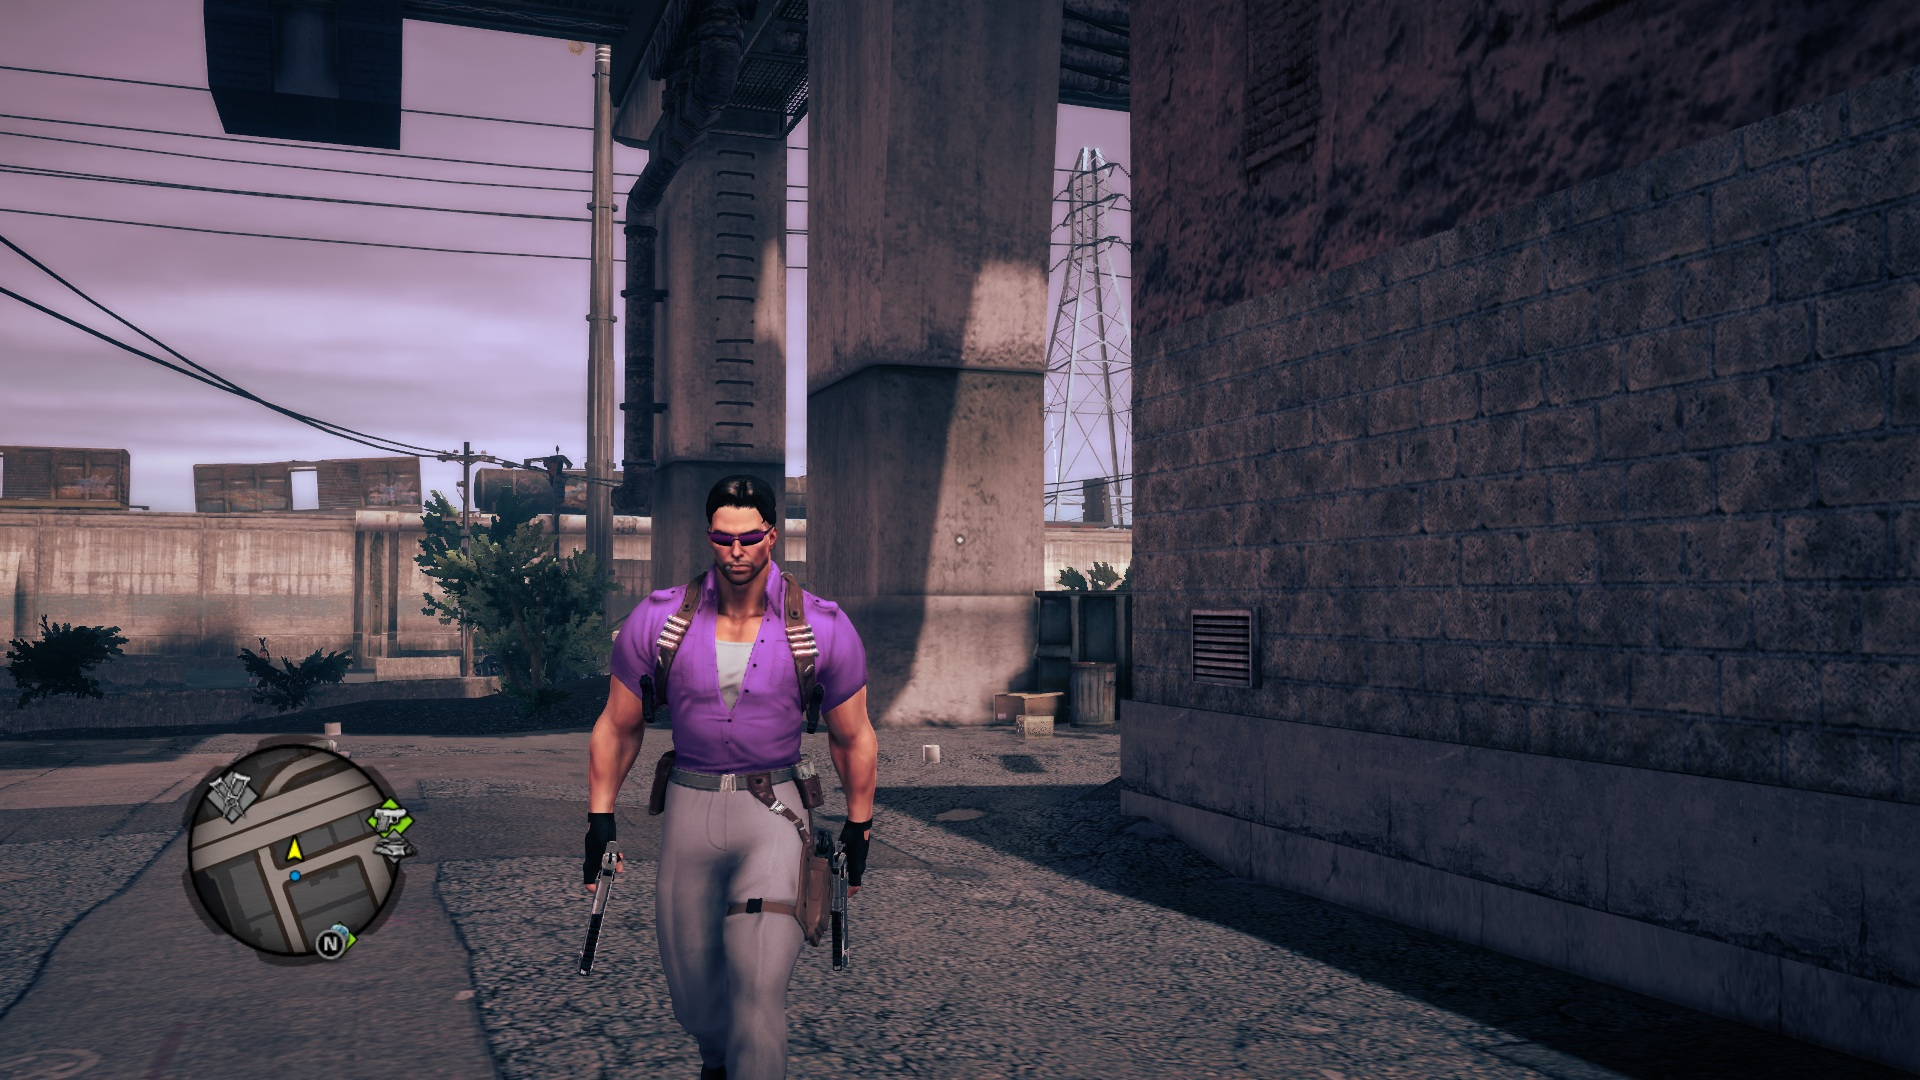 Saints Row IV 2019-02-12 14-46-30-87.jpg